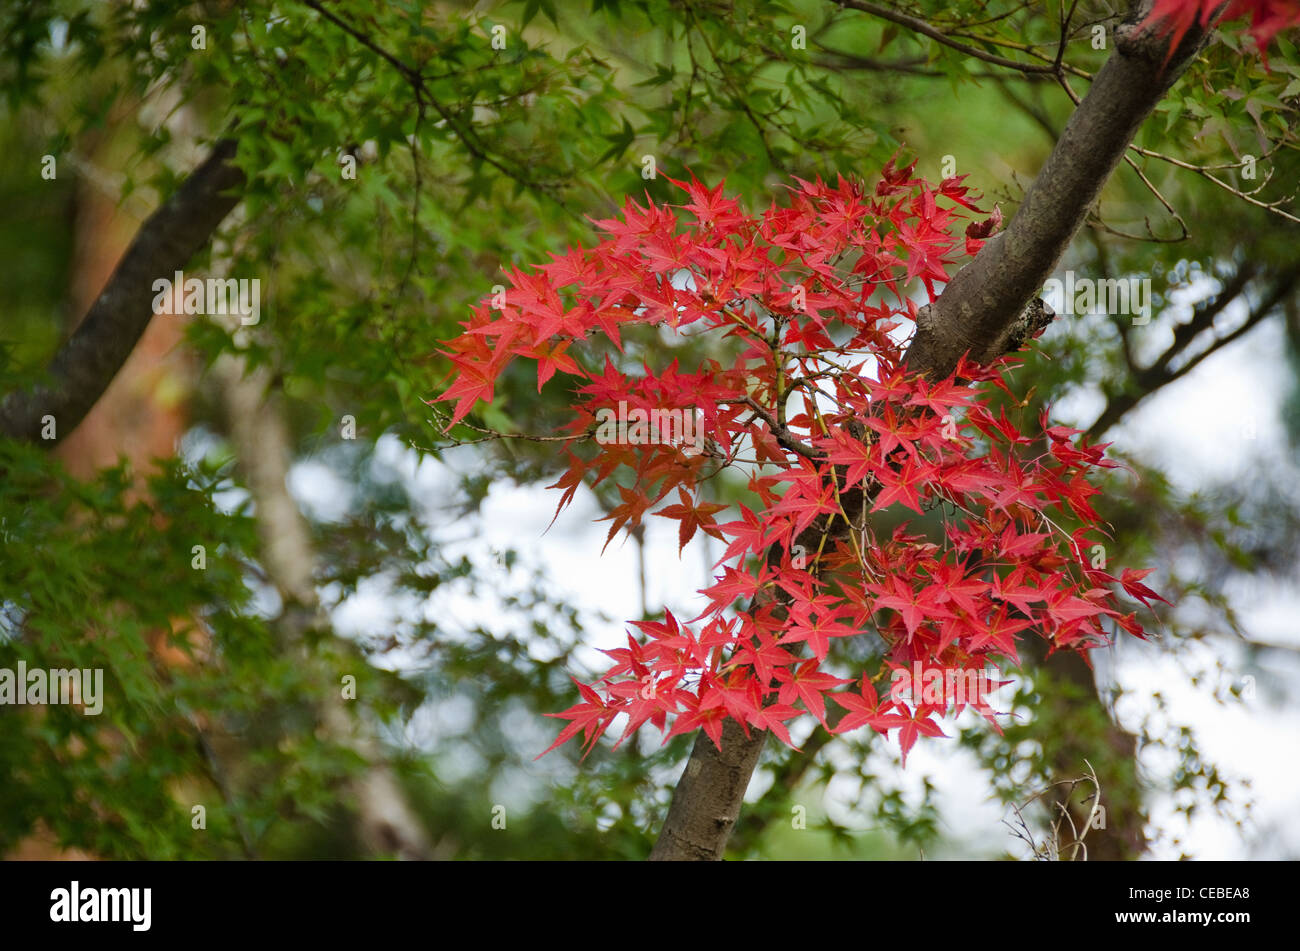 Red leaves of the japanese maple in autumn in front of green leaves, foliage Stock Photo